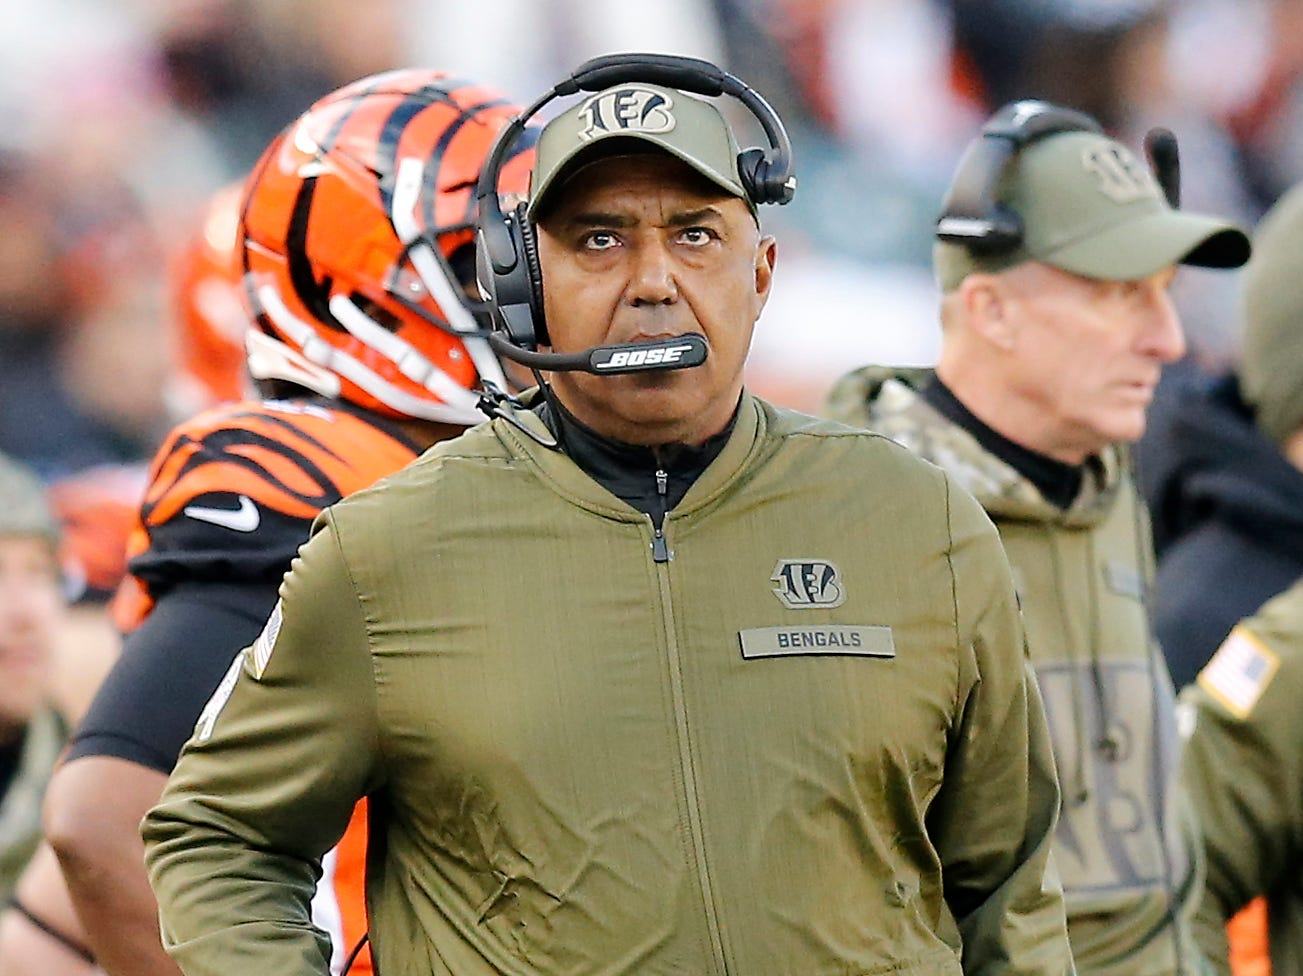 Cincinnati Bengals head coach Marvin Lewis looks to the video board in the fourth quarter of the NFL Week 10 game between the Cincinnati Bengals and the New Orleans Saints at Paul Brown Stadium in downtown Cincinnati on Sunday, Nov. 11, 2018. The Saints beat the Bengals 51-14.